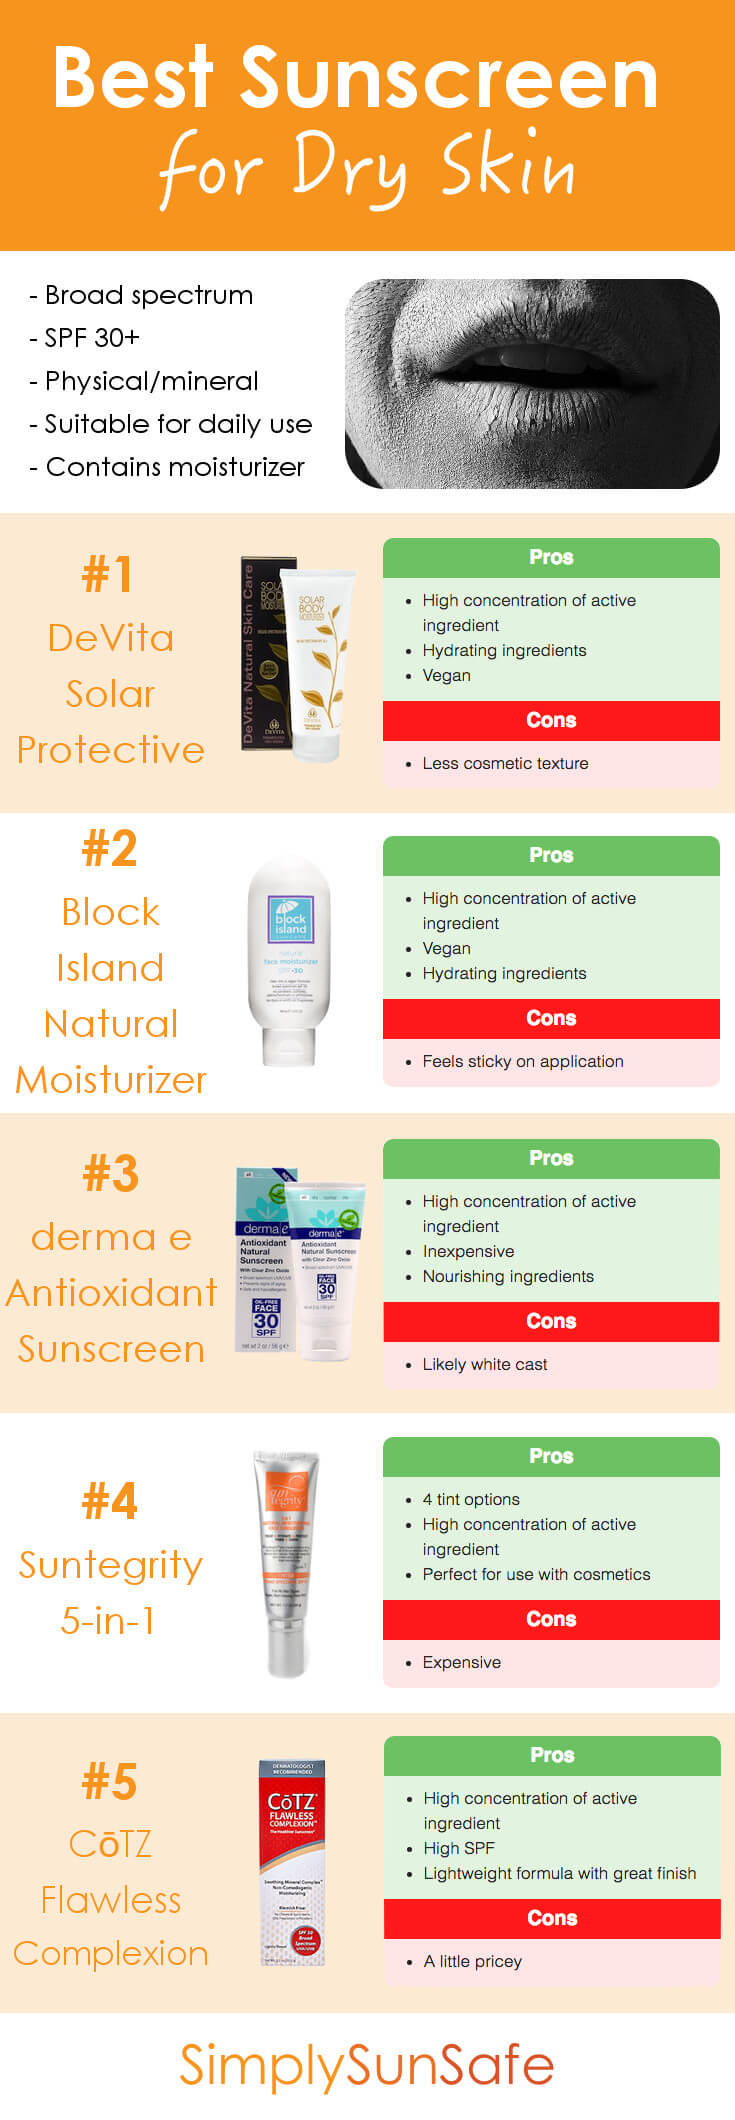 Best Sunscreen for Dry Skin Pinterest